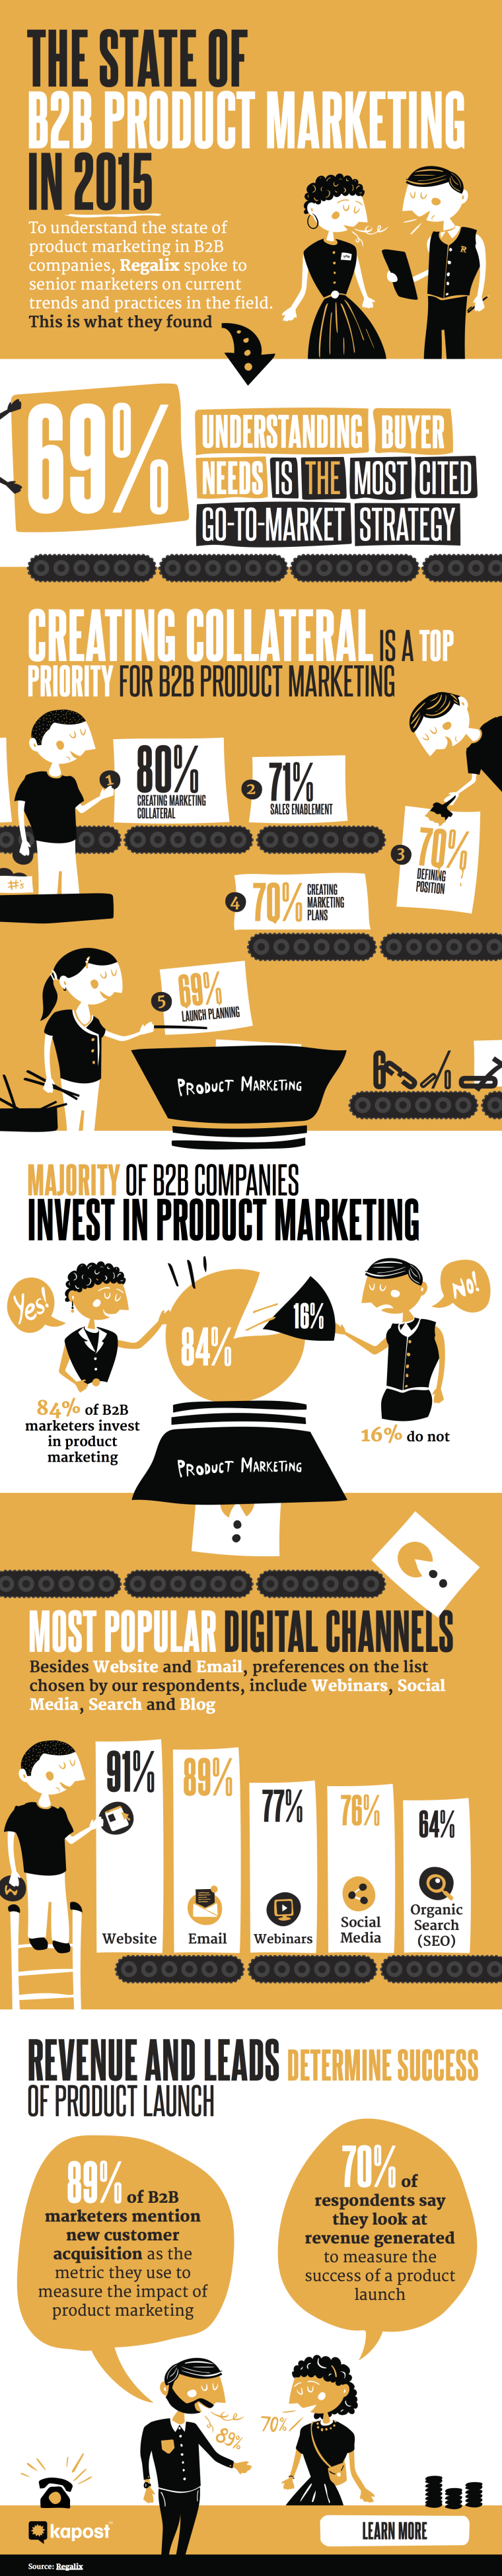 infographic_-_the_state_of_b2b_product_marketing